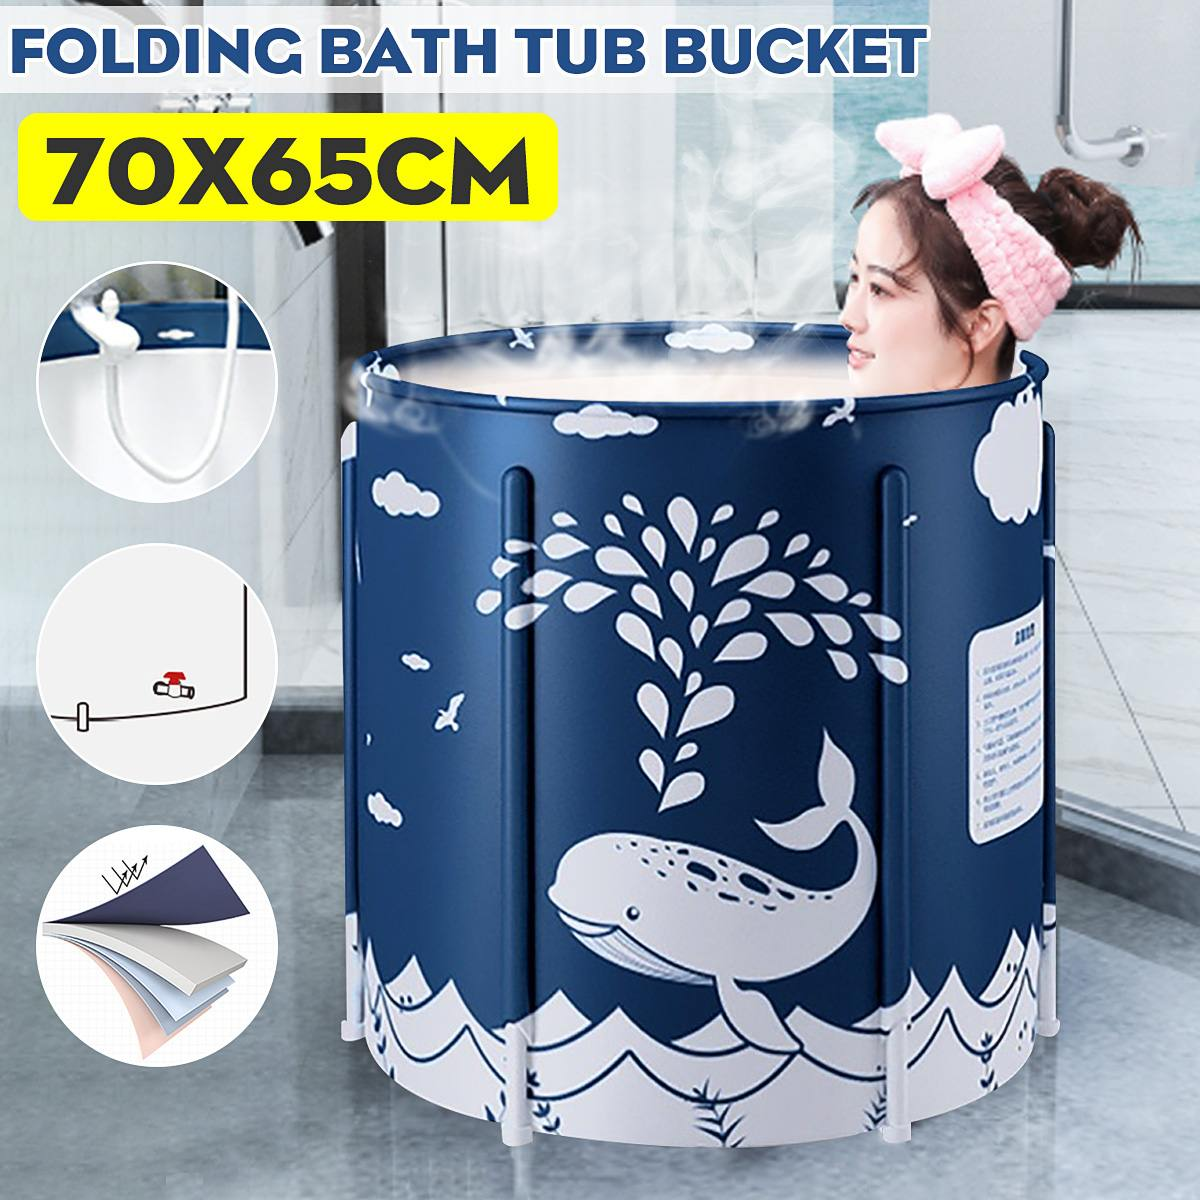 70x65cm Portable Foldable Bathtub Thickened Adult Bathtub Home Single SPA Massage Pool Bathing Bucket Indoor Outdoor Bathtub